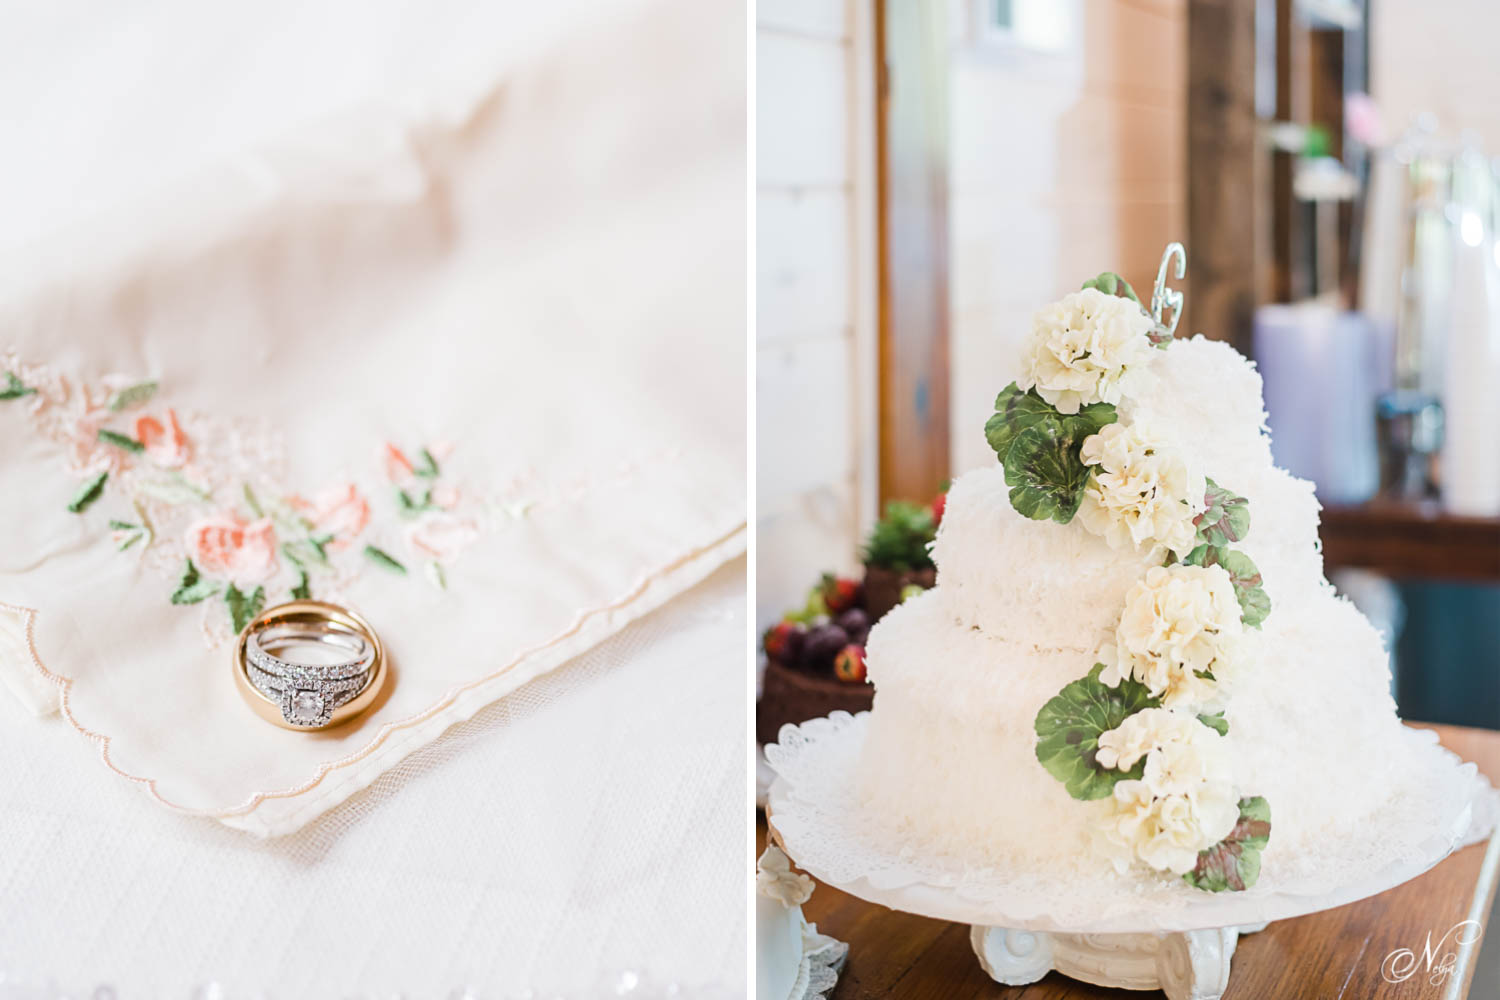 wedding rings on a cream colored vintage handkerchief. And a cocnut three tiered wedding cake with hydrangeas